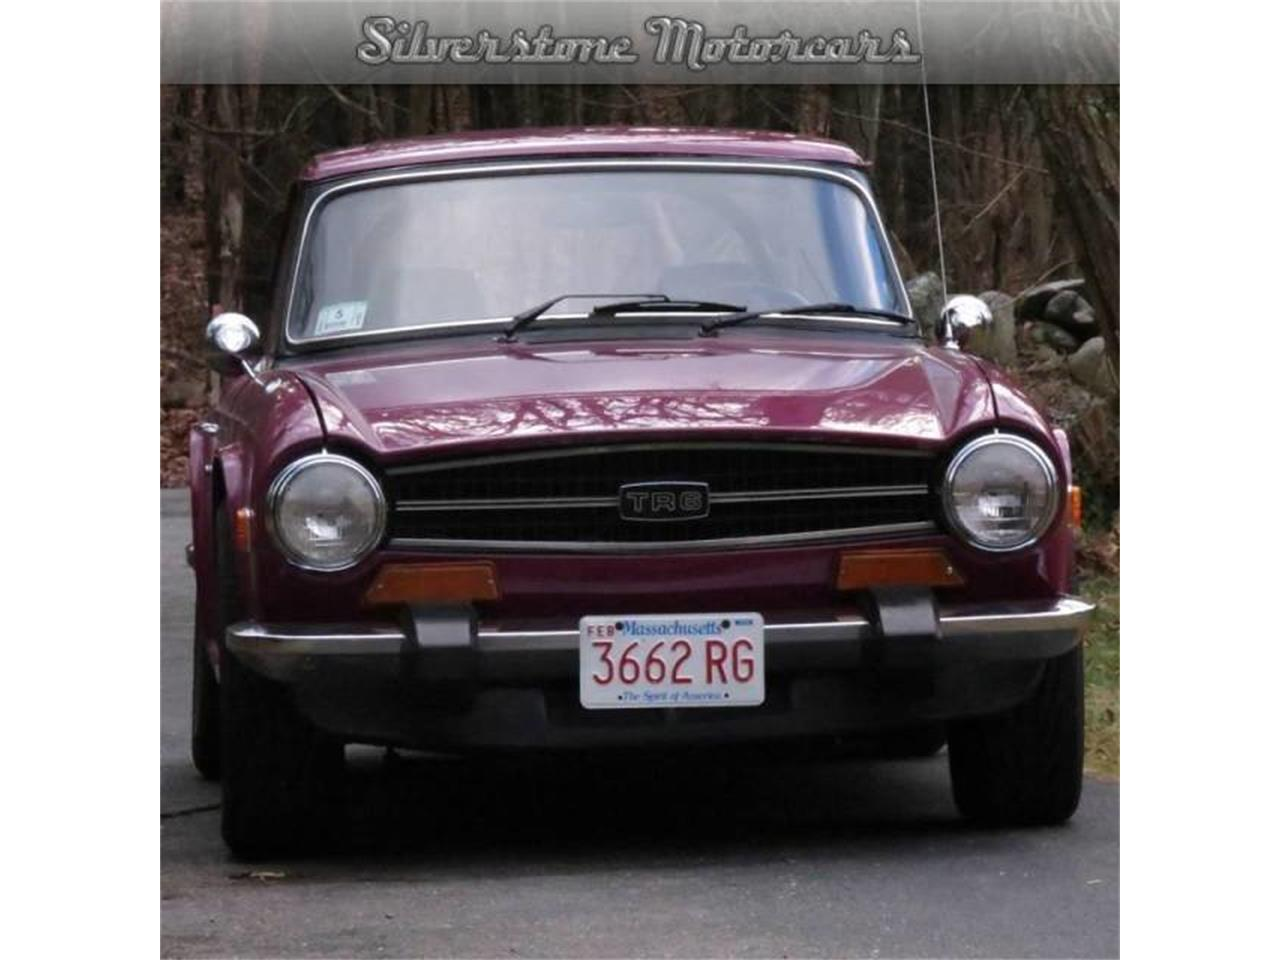 Large Picture of '74 Triumph TR6 Offered by Silverstone Motorcars - F8HQ